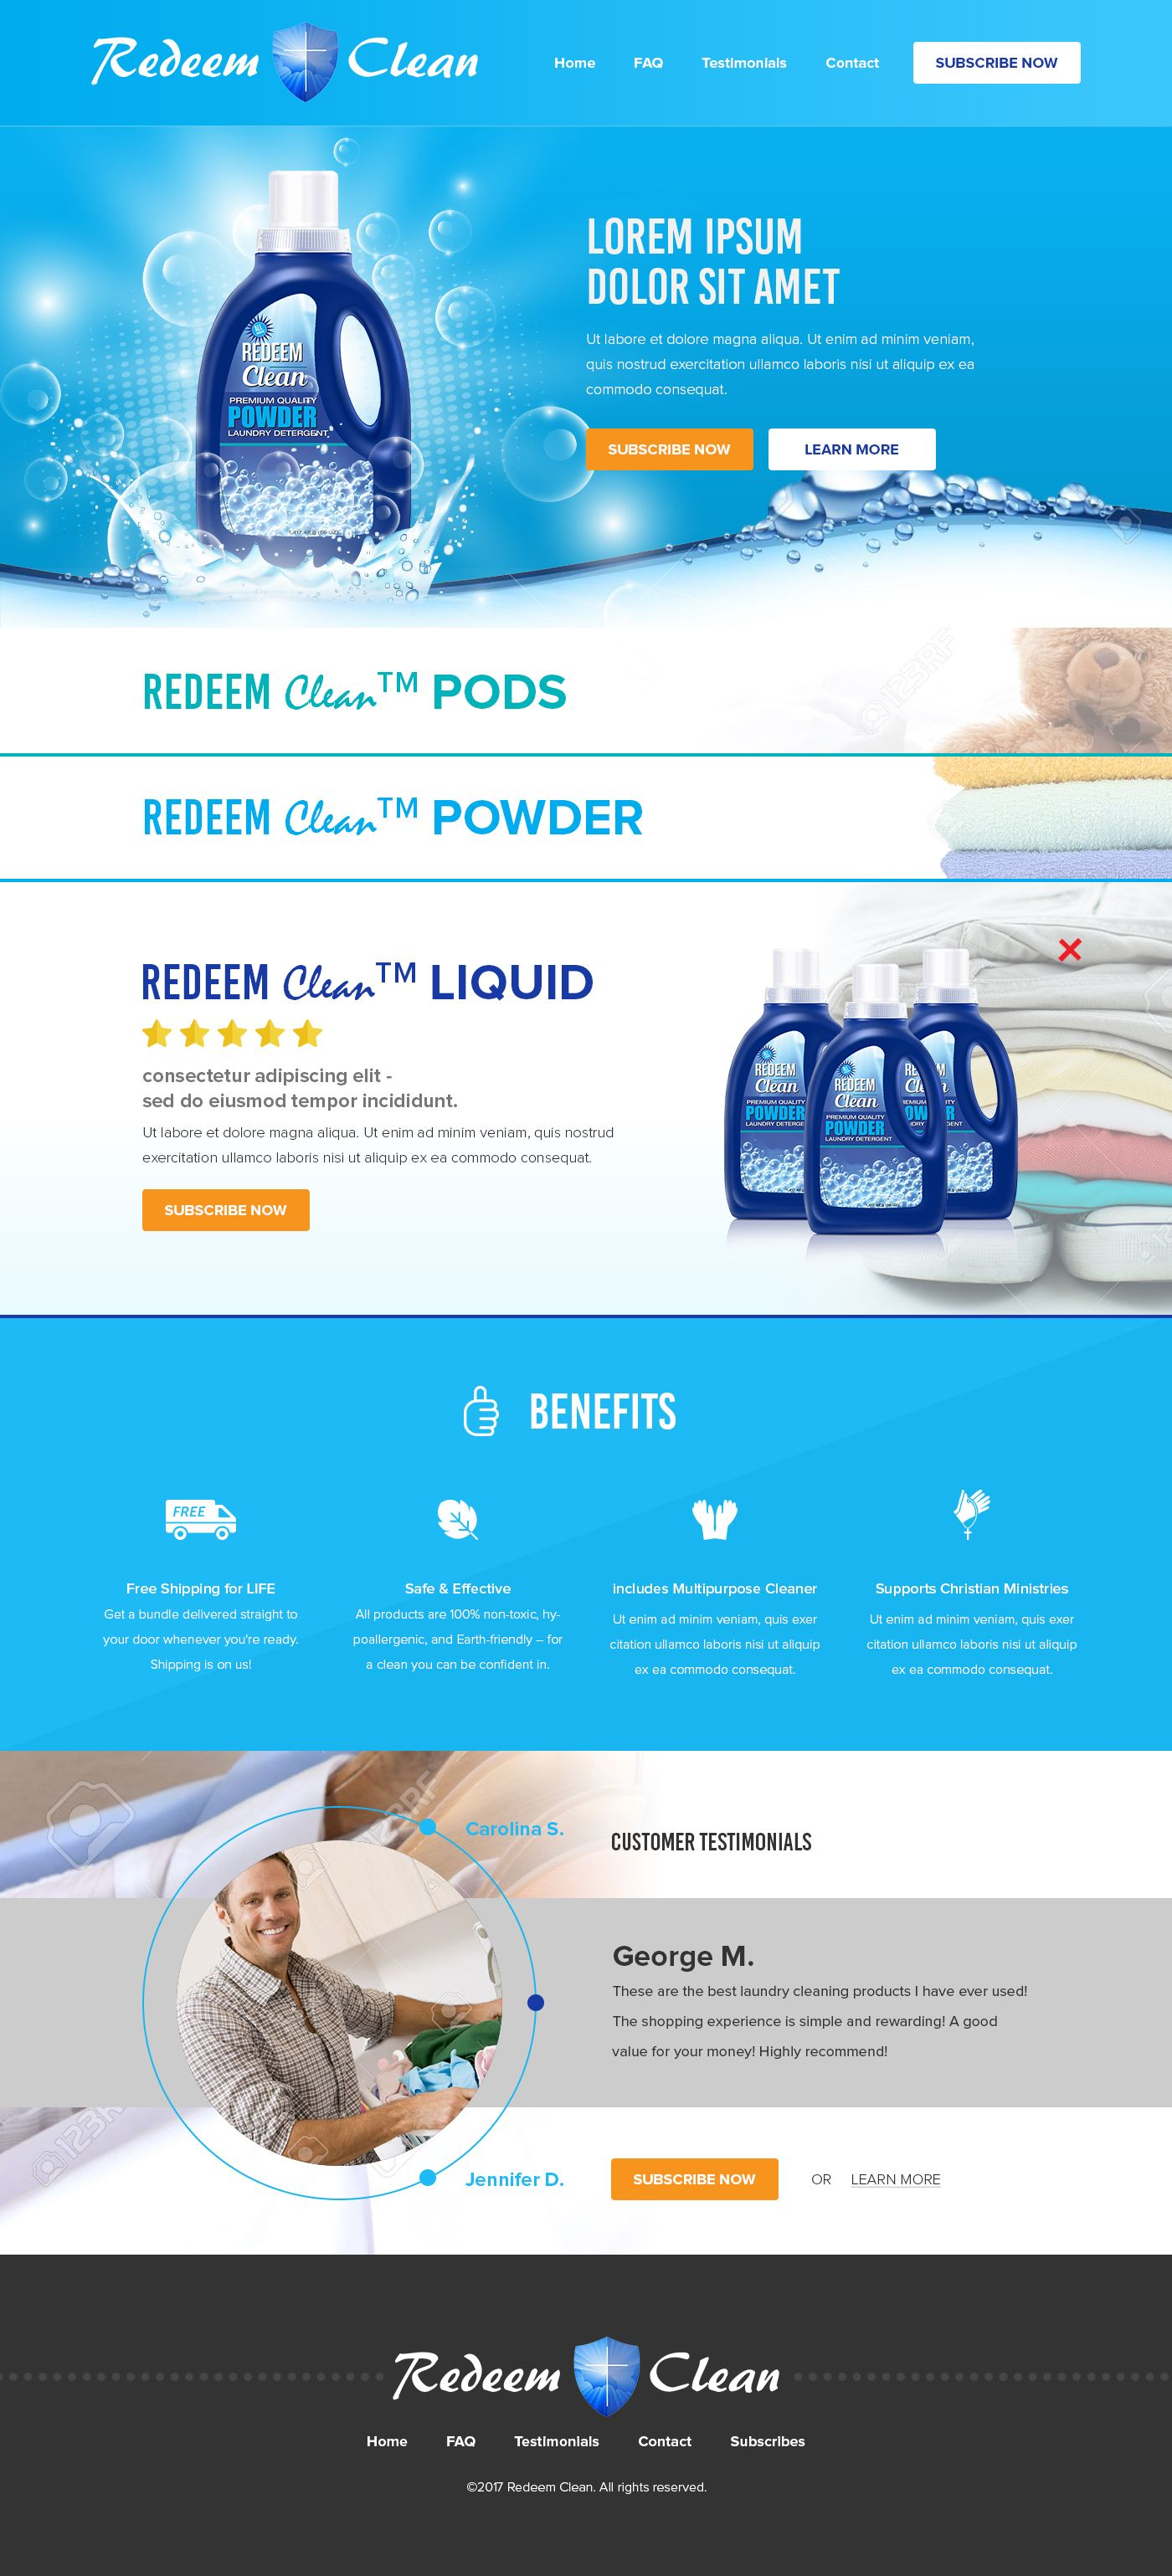 Redeem Clean Website Design Laundry Detergent Offered In Pods